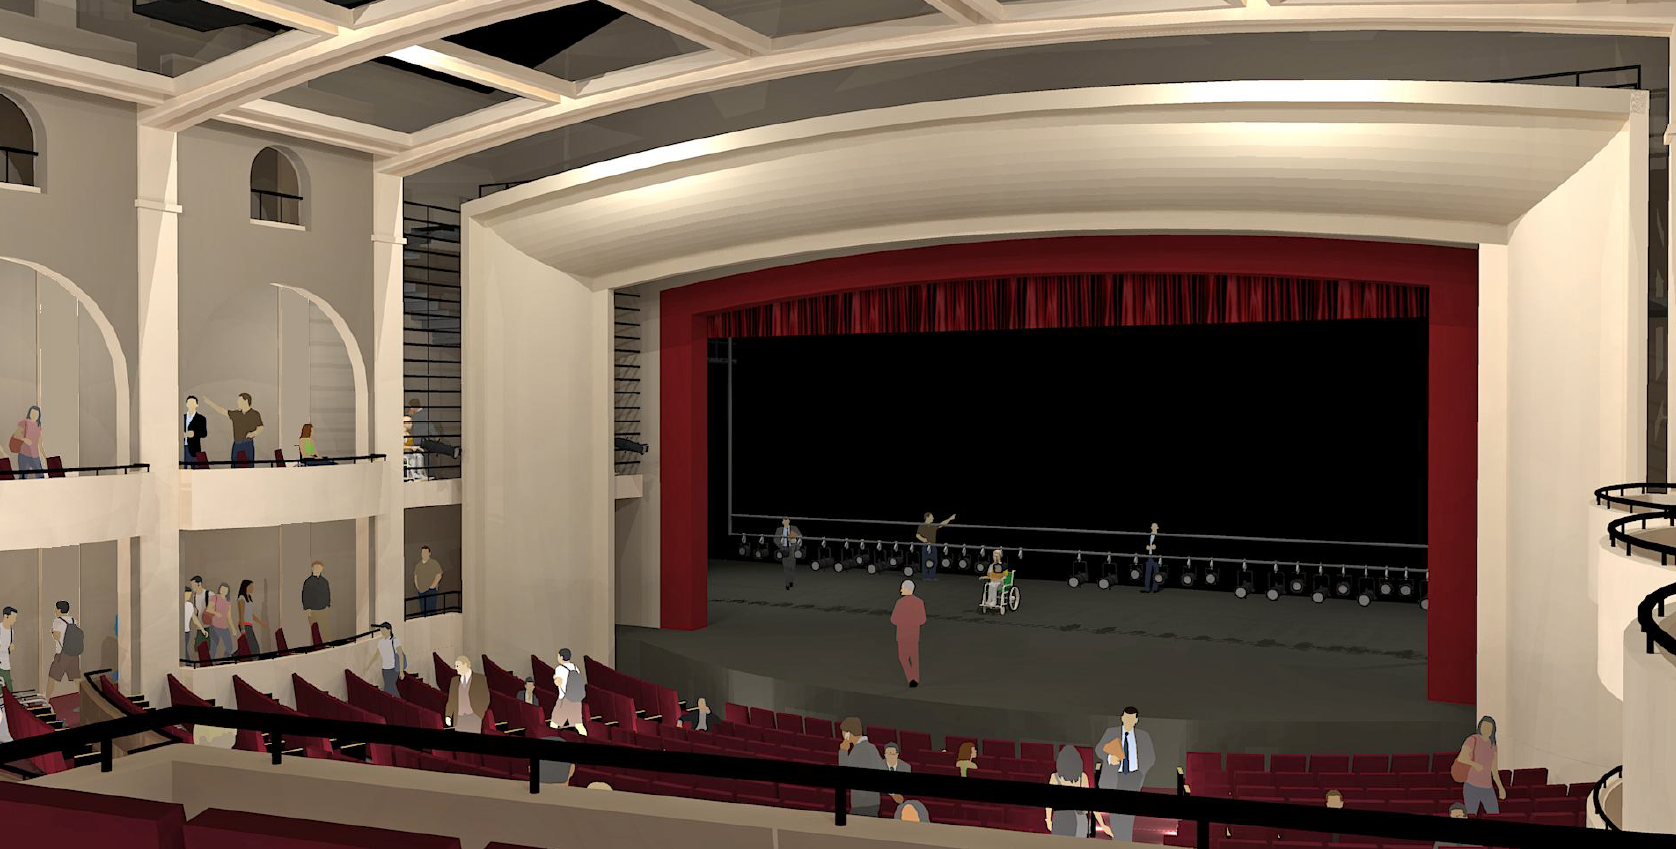 School Board Reviews Plans For New Performing Arts Center The Paly Voice